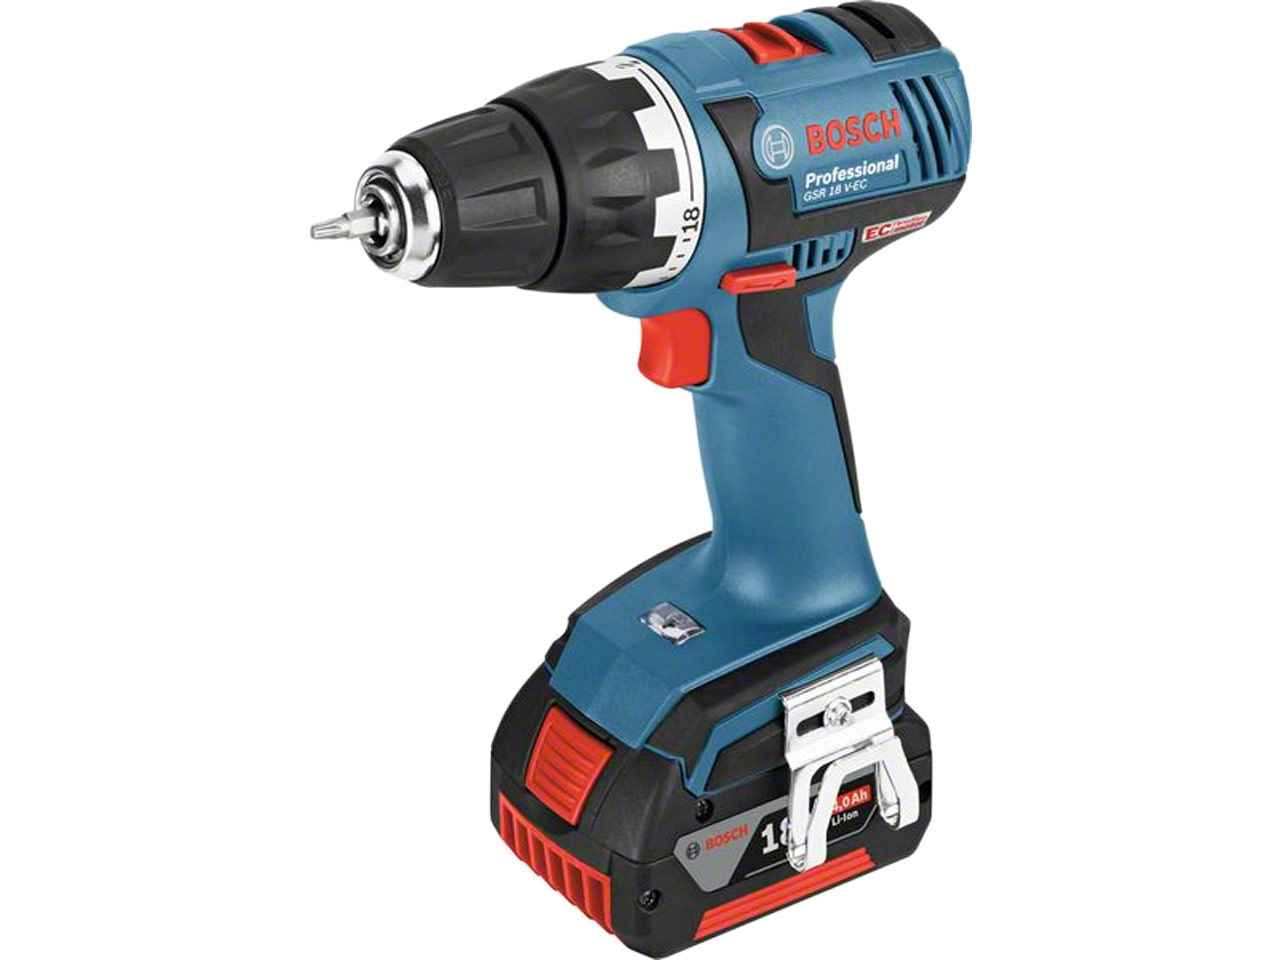 bosch 06019d6100 gsr18vecn 18v brushless drill driver bare unit ebay. Black Bedroom Furniture Sets. Home Design Ideas